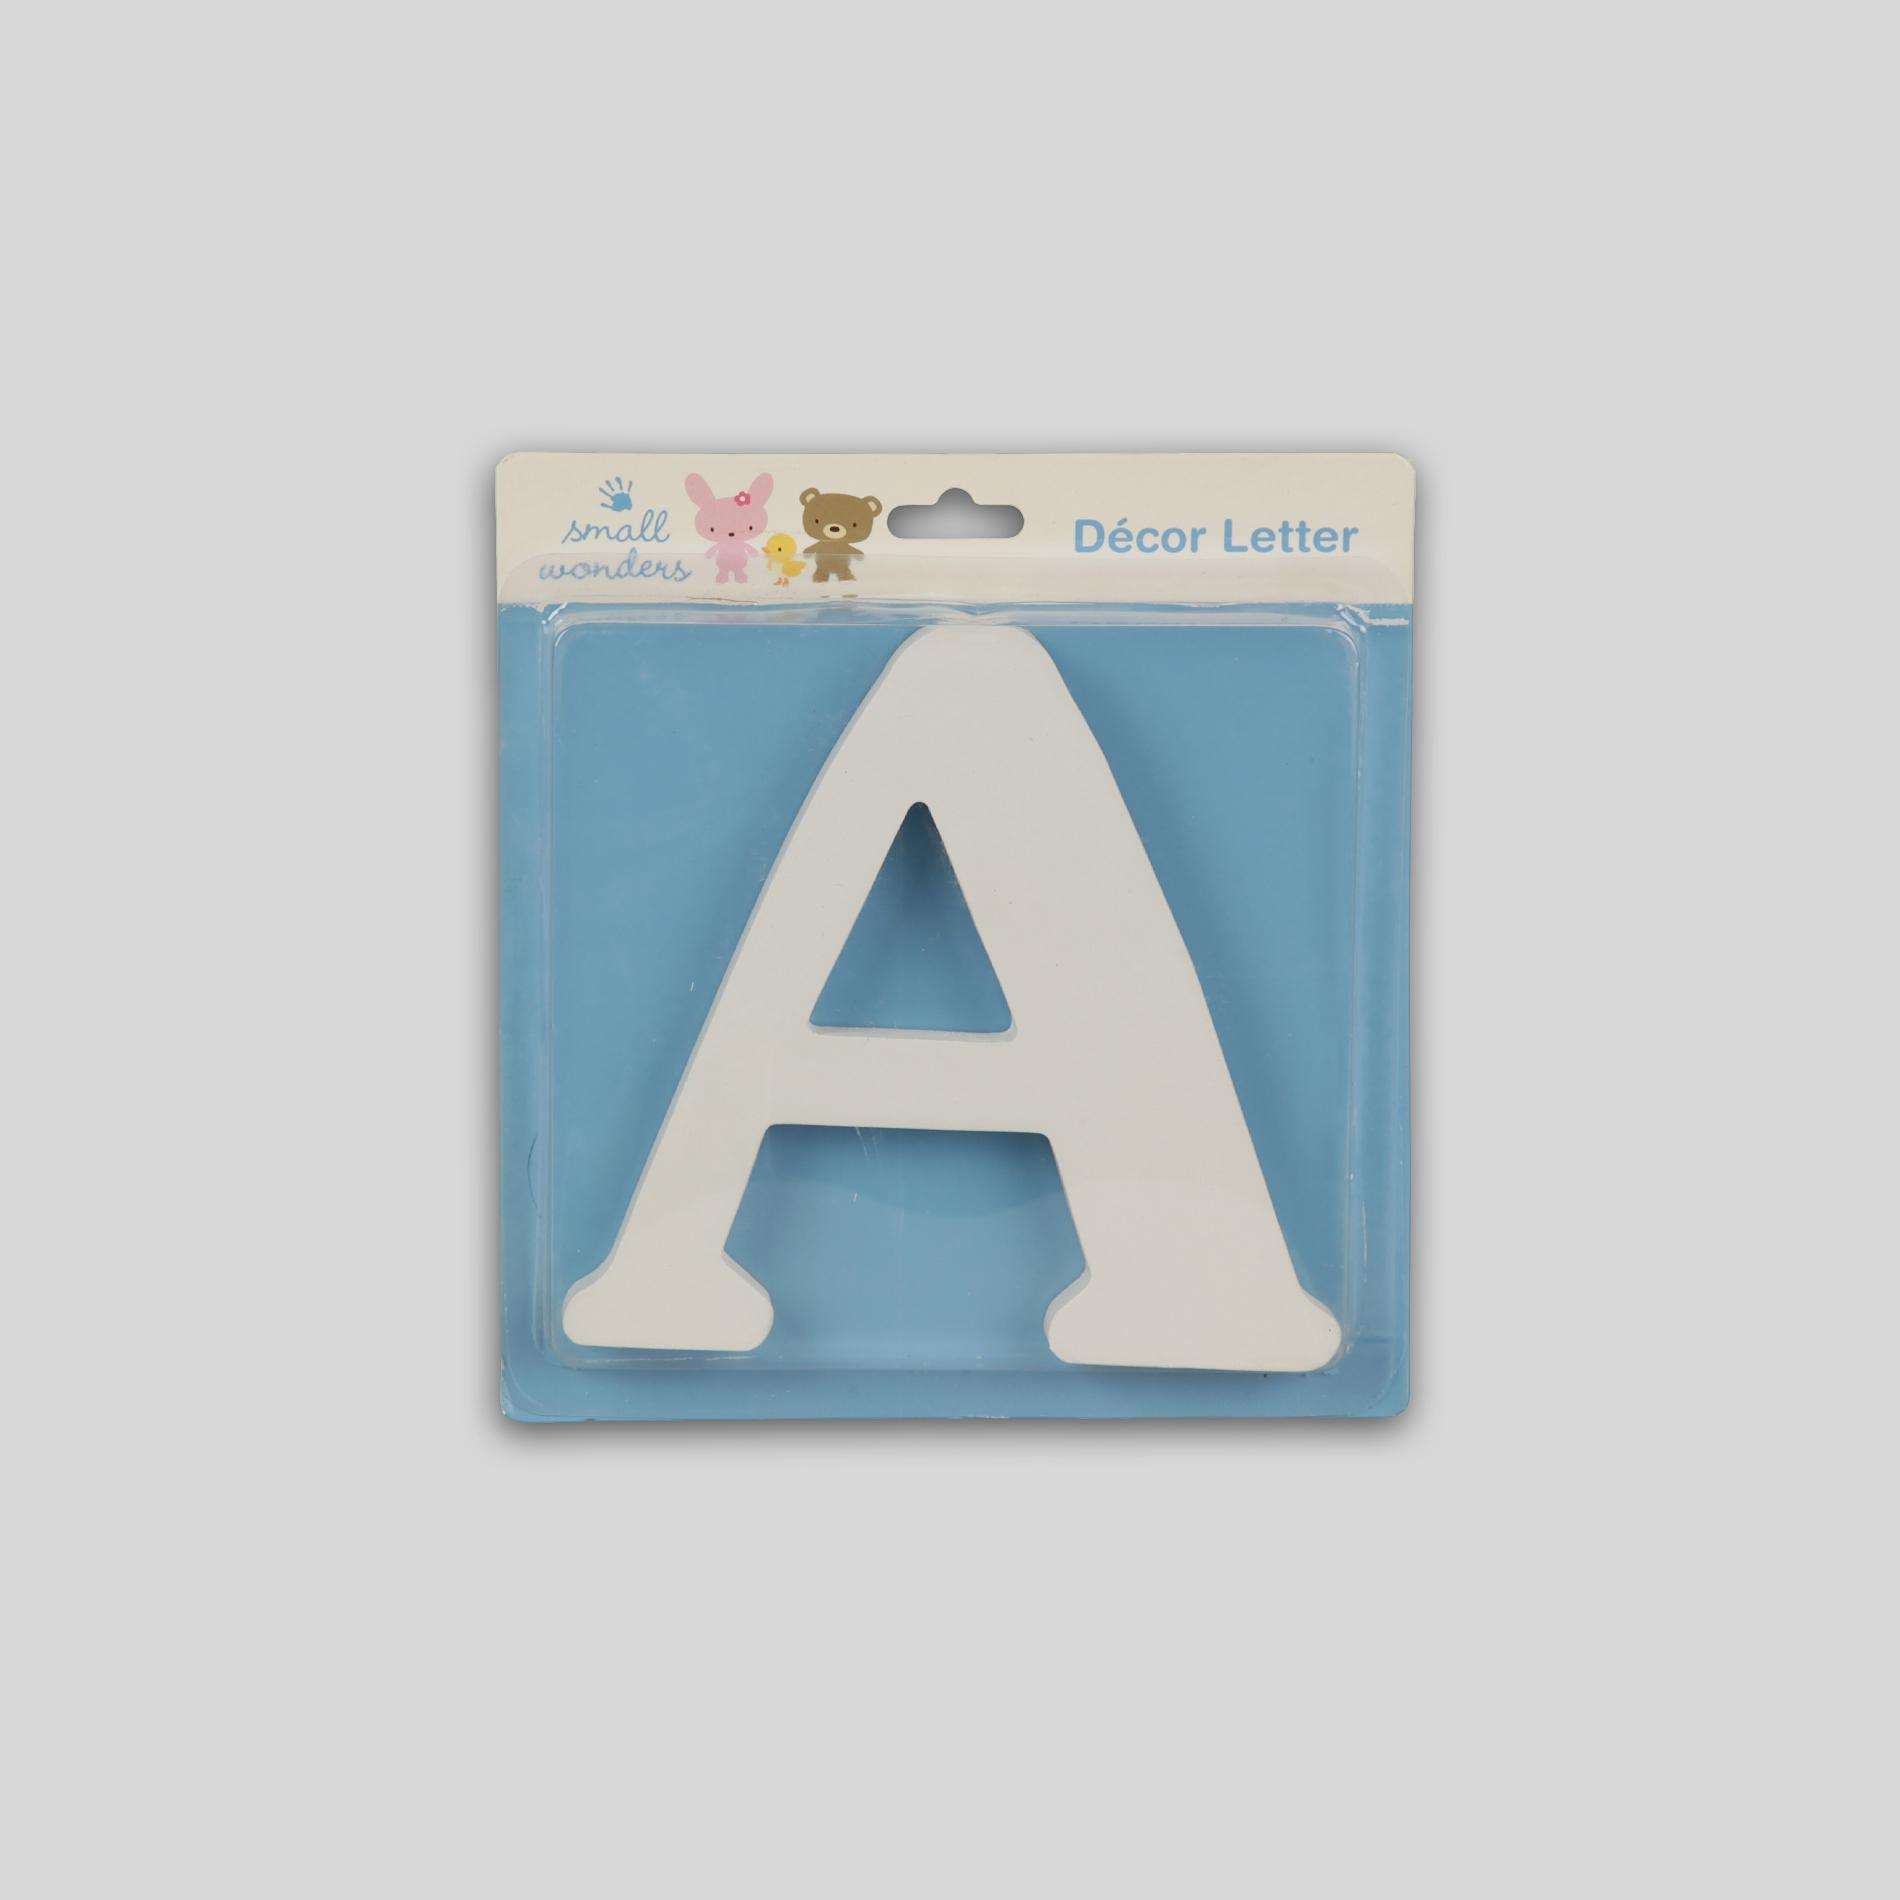 Small Wonders Wooden Letter Wall Decor - Letter A